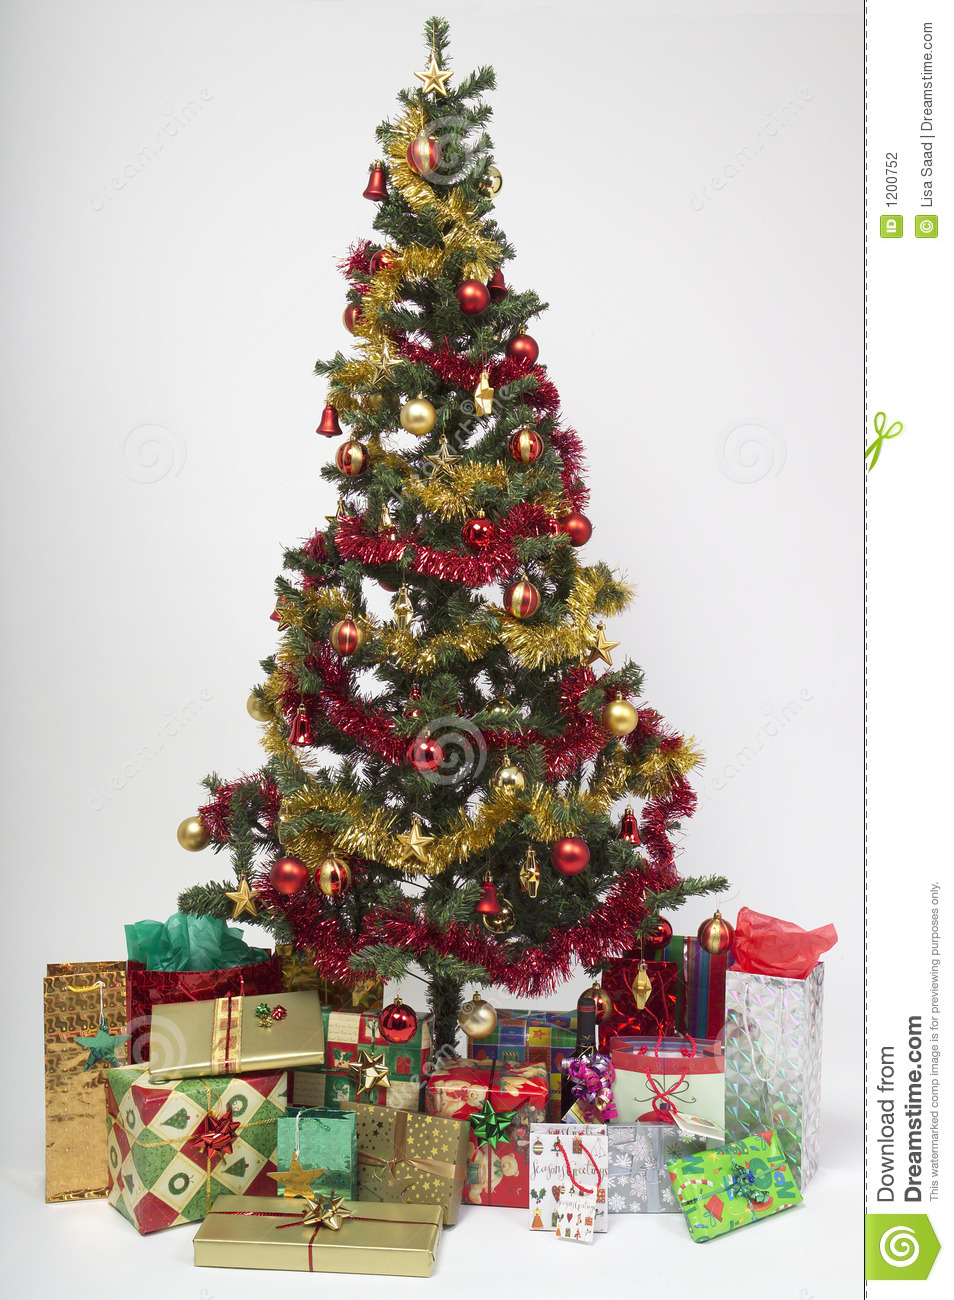 Presents for everyone